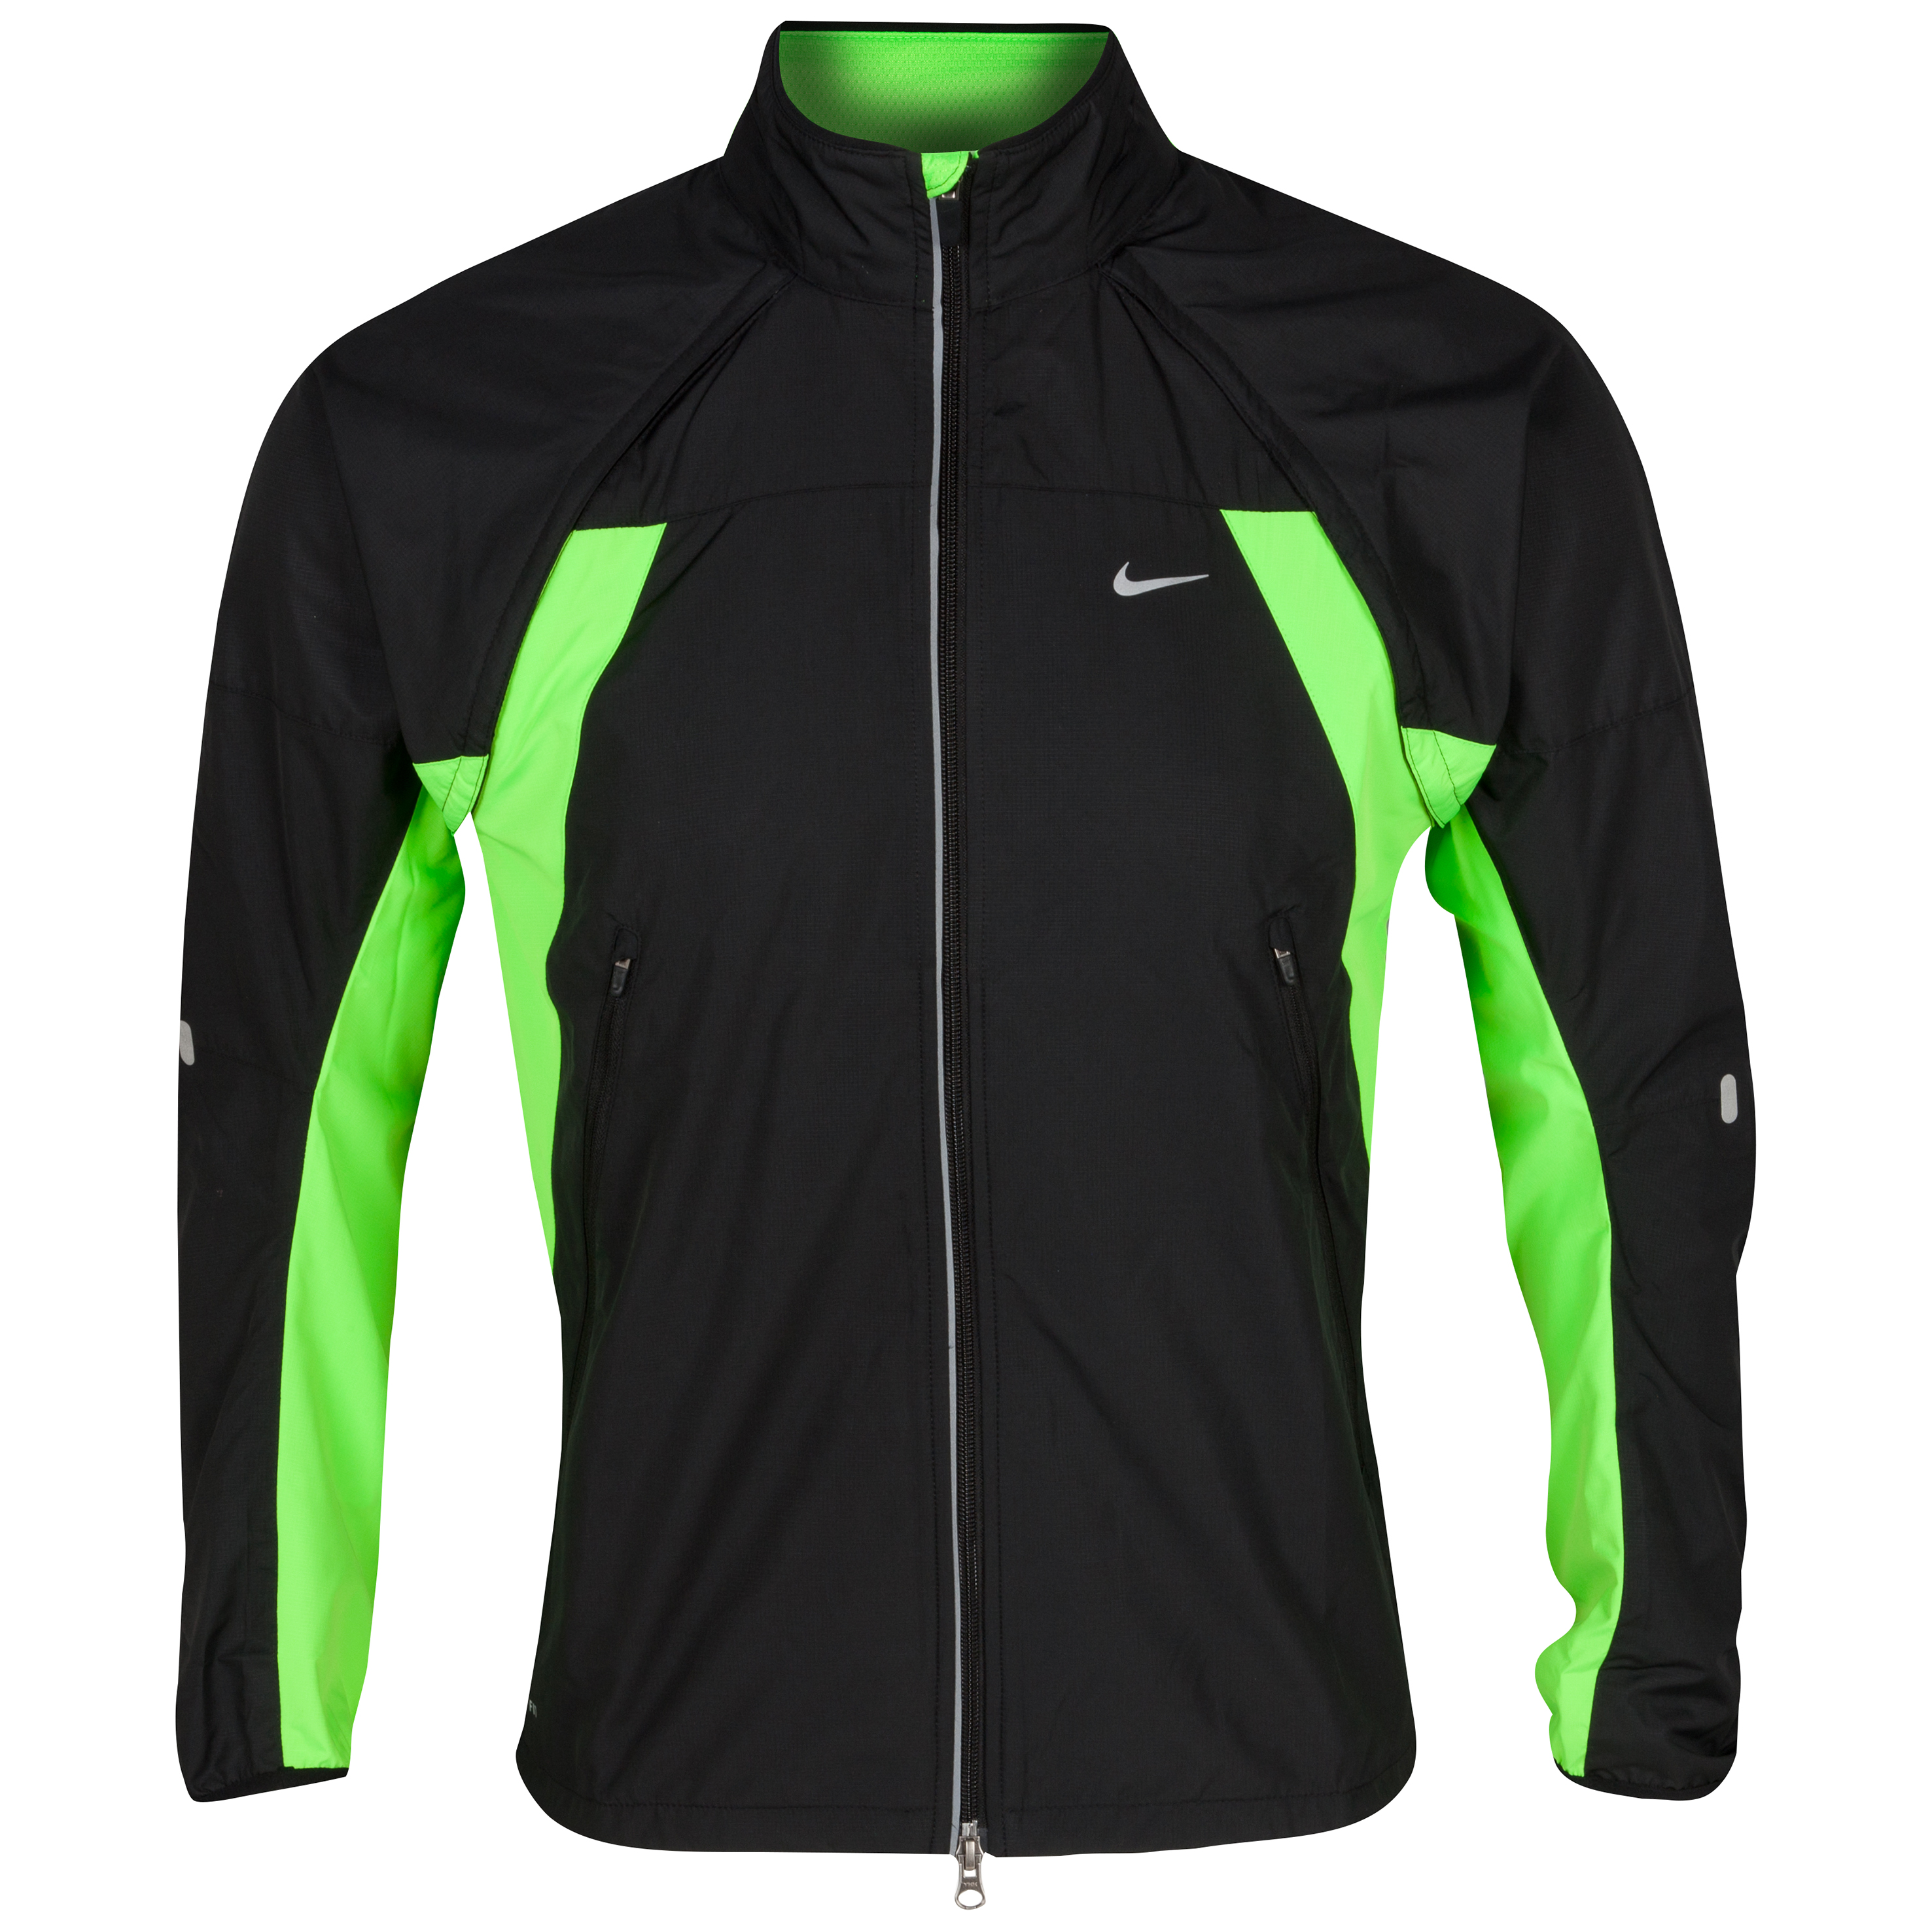 Nike Shifter Jacket - Black/Electric Green/Reflective Green